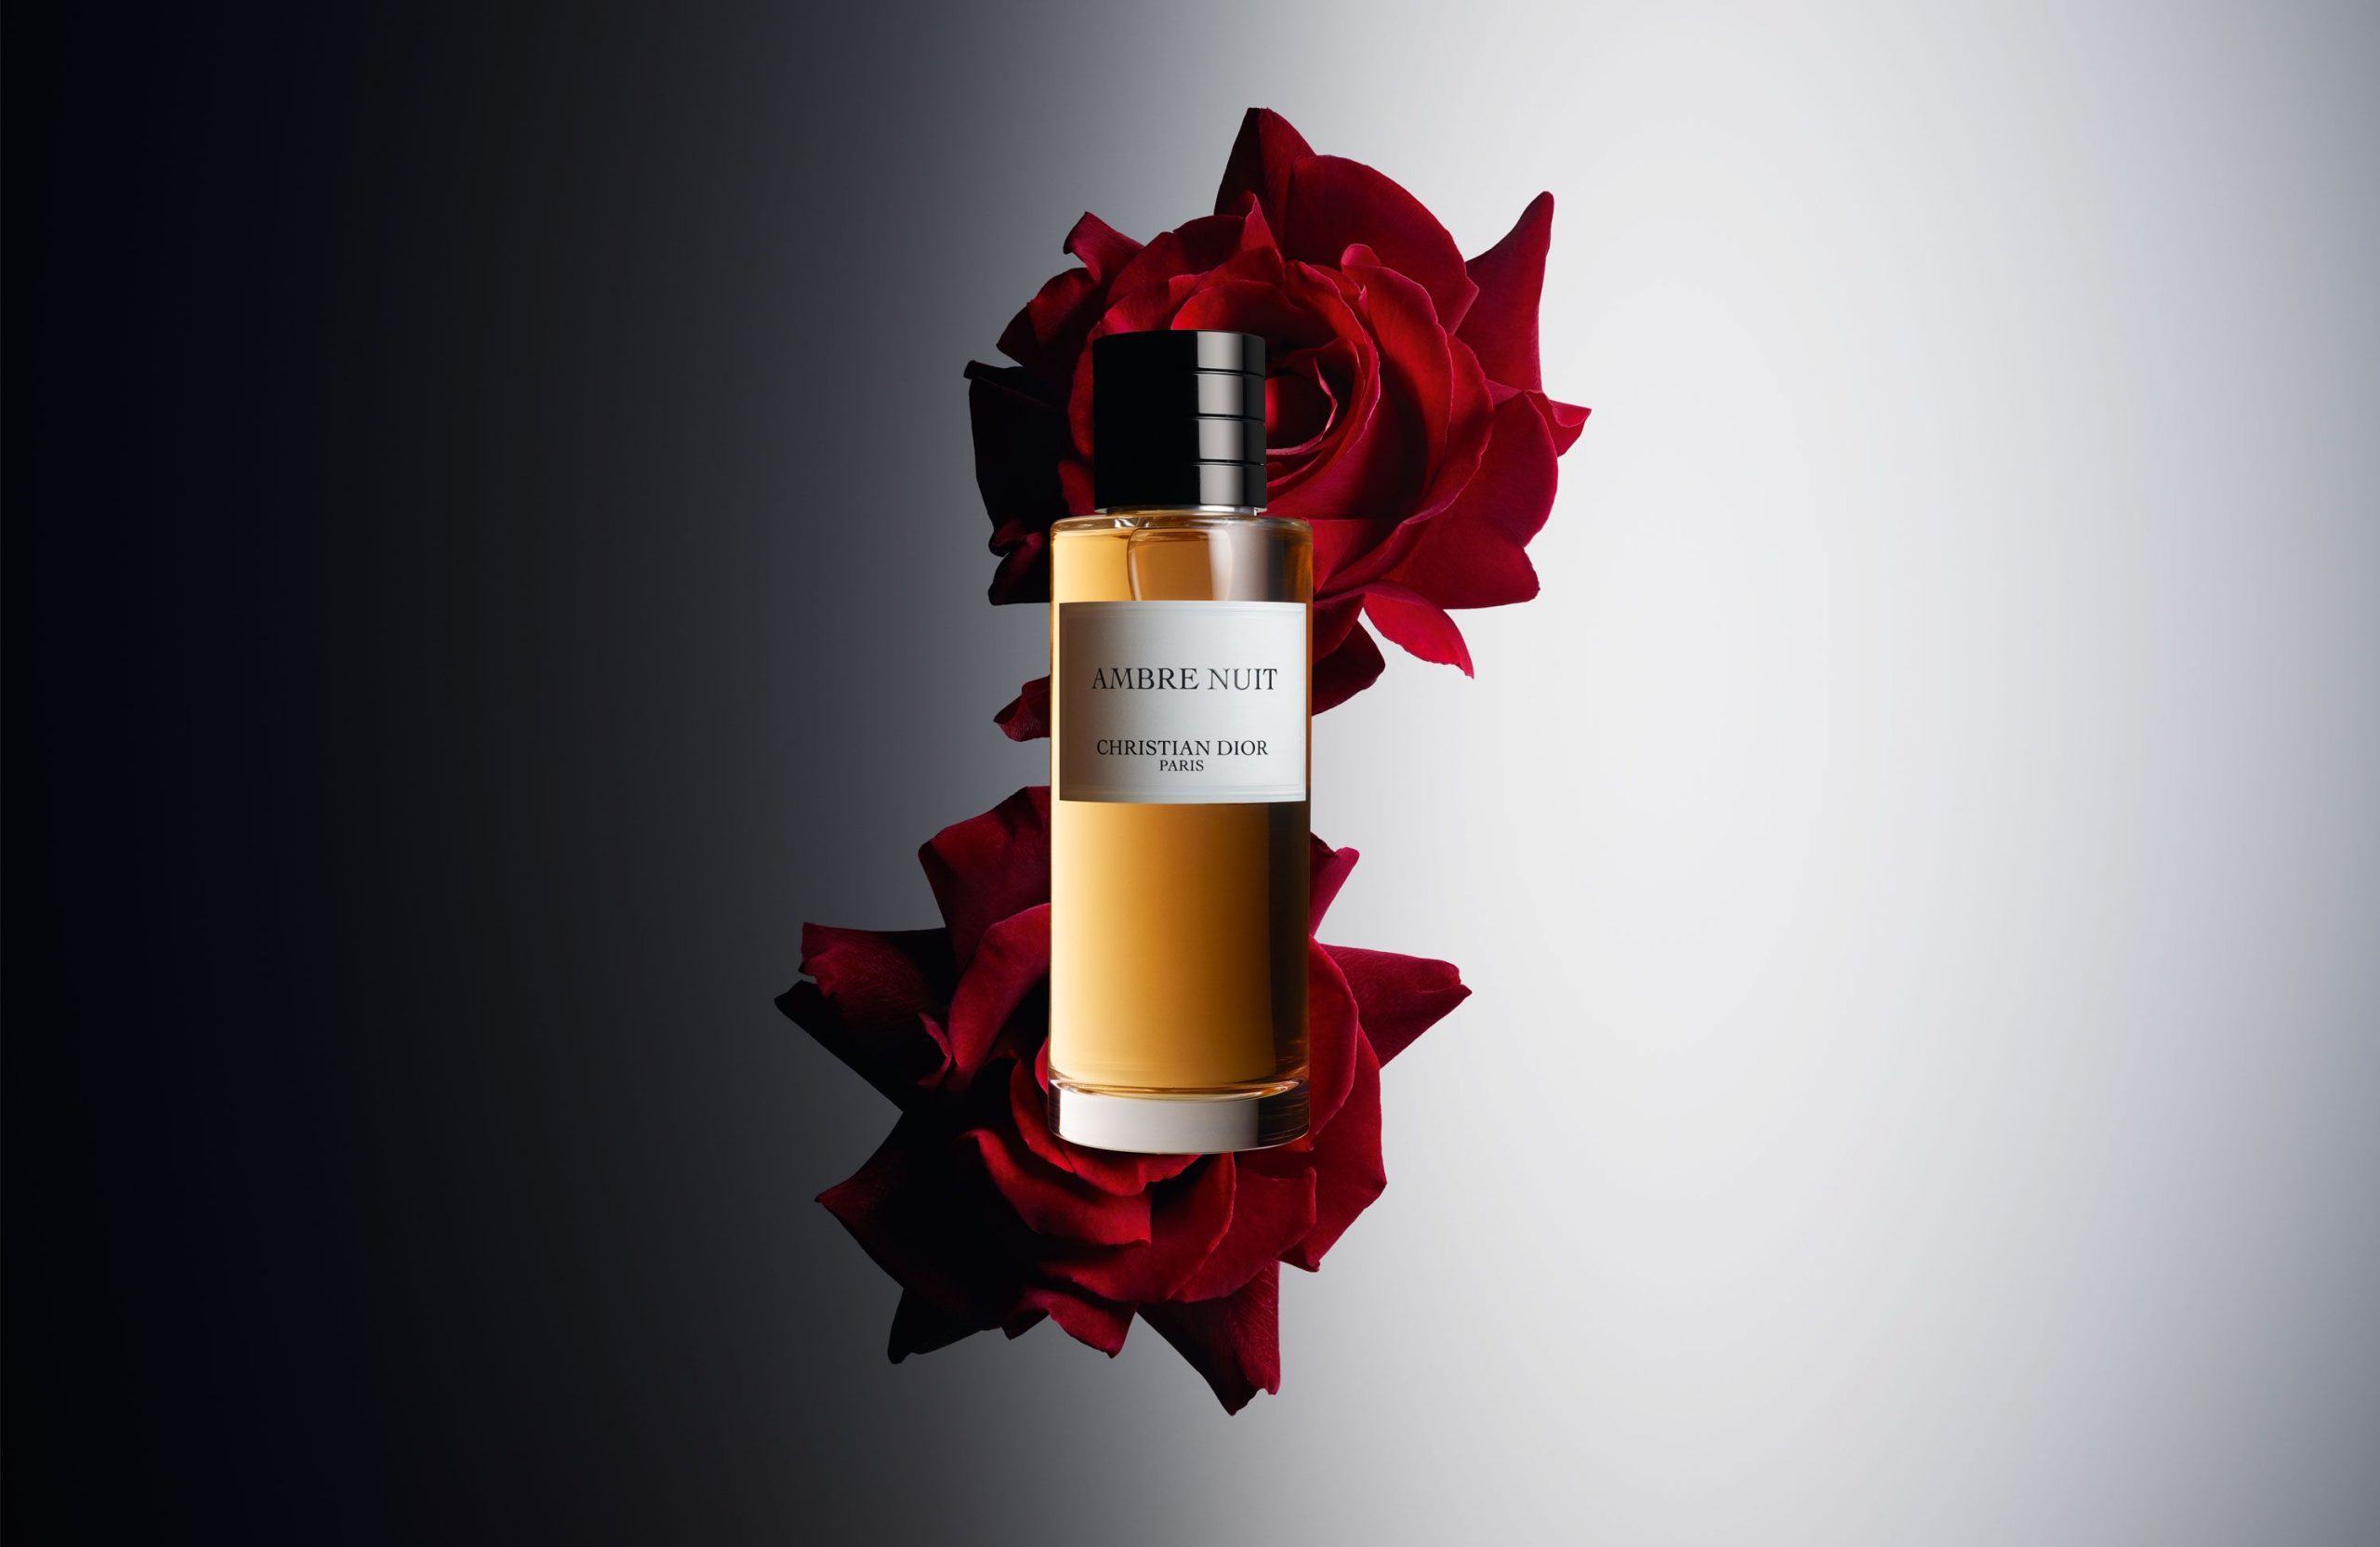 Image result for Ambre nuit